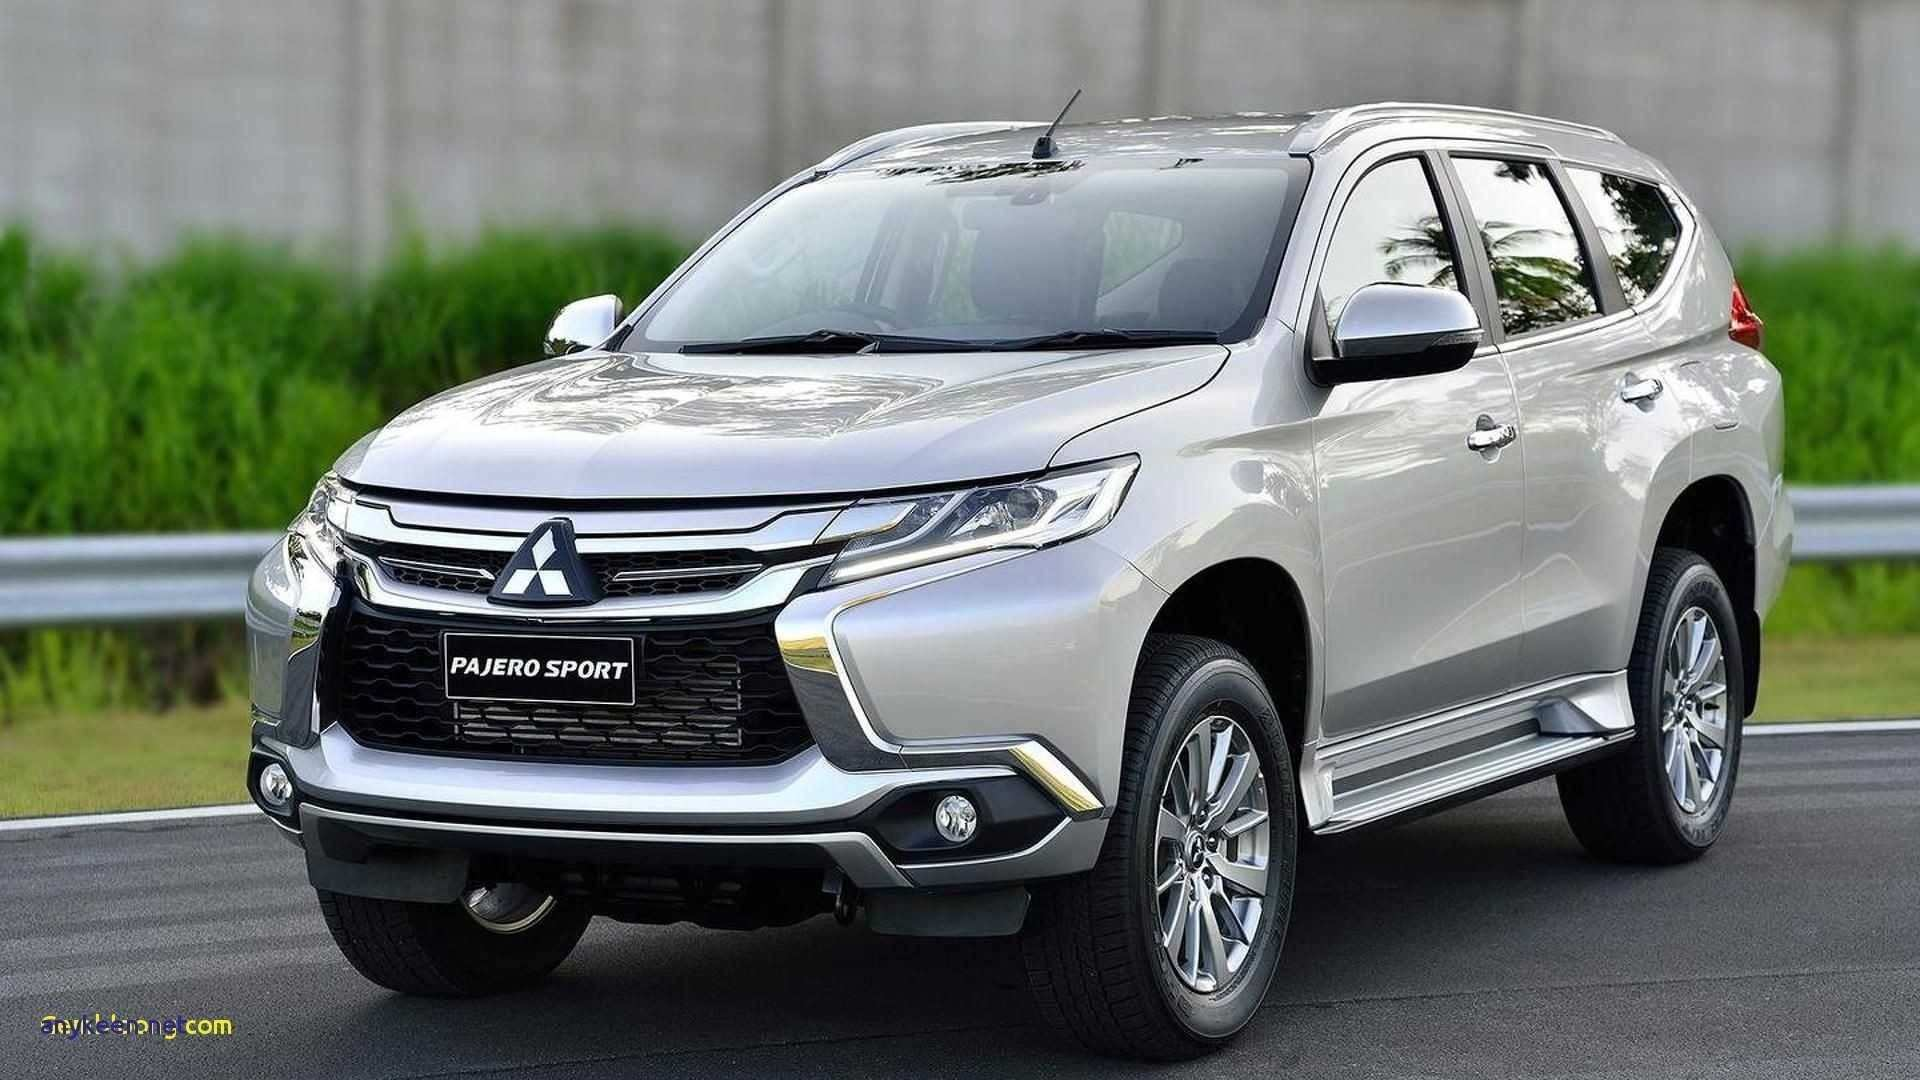 83 Great Mitsubishi Montero Limited 2020 Specs and Review for Mitsubishi Montero Limited 2020